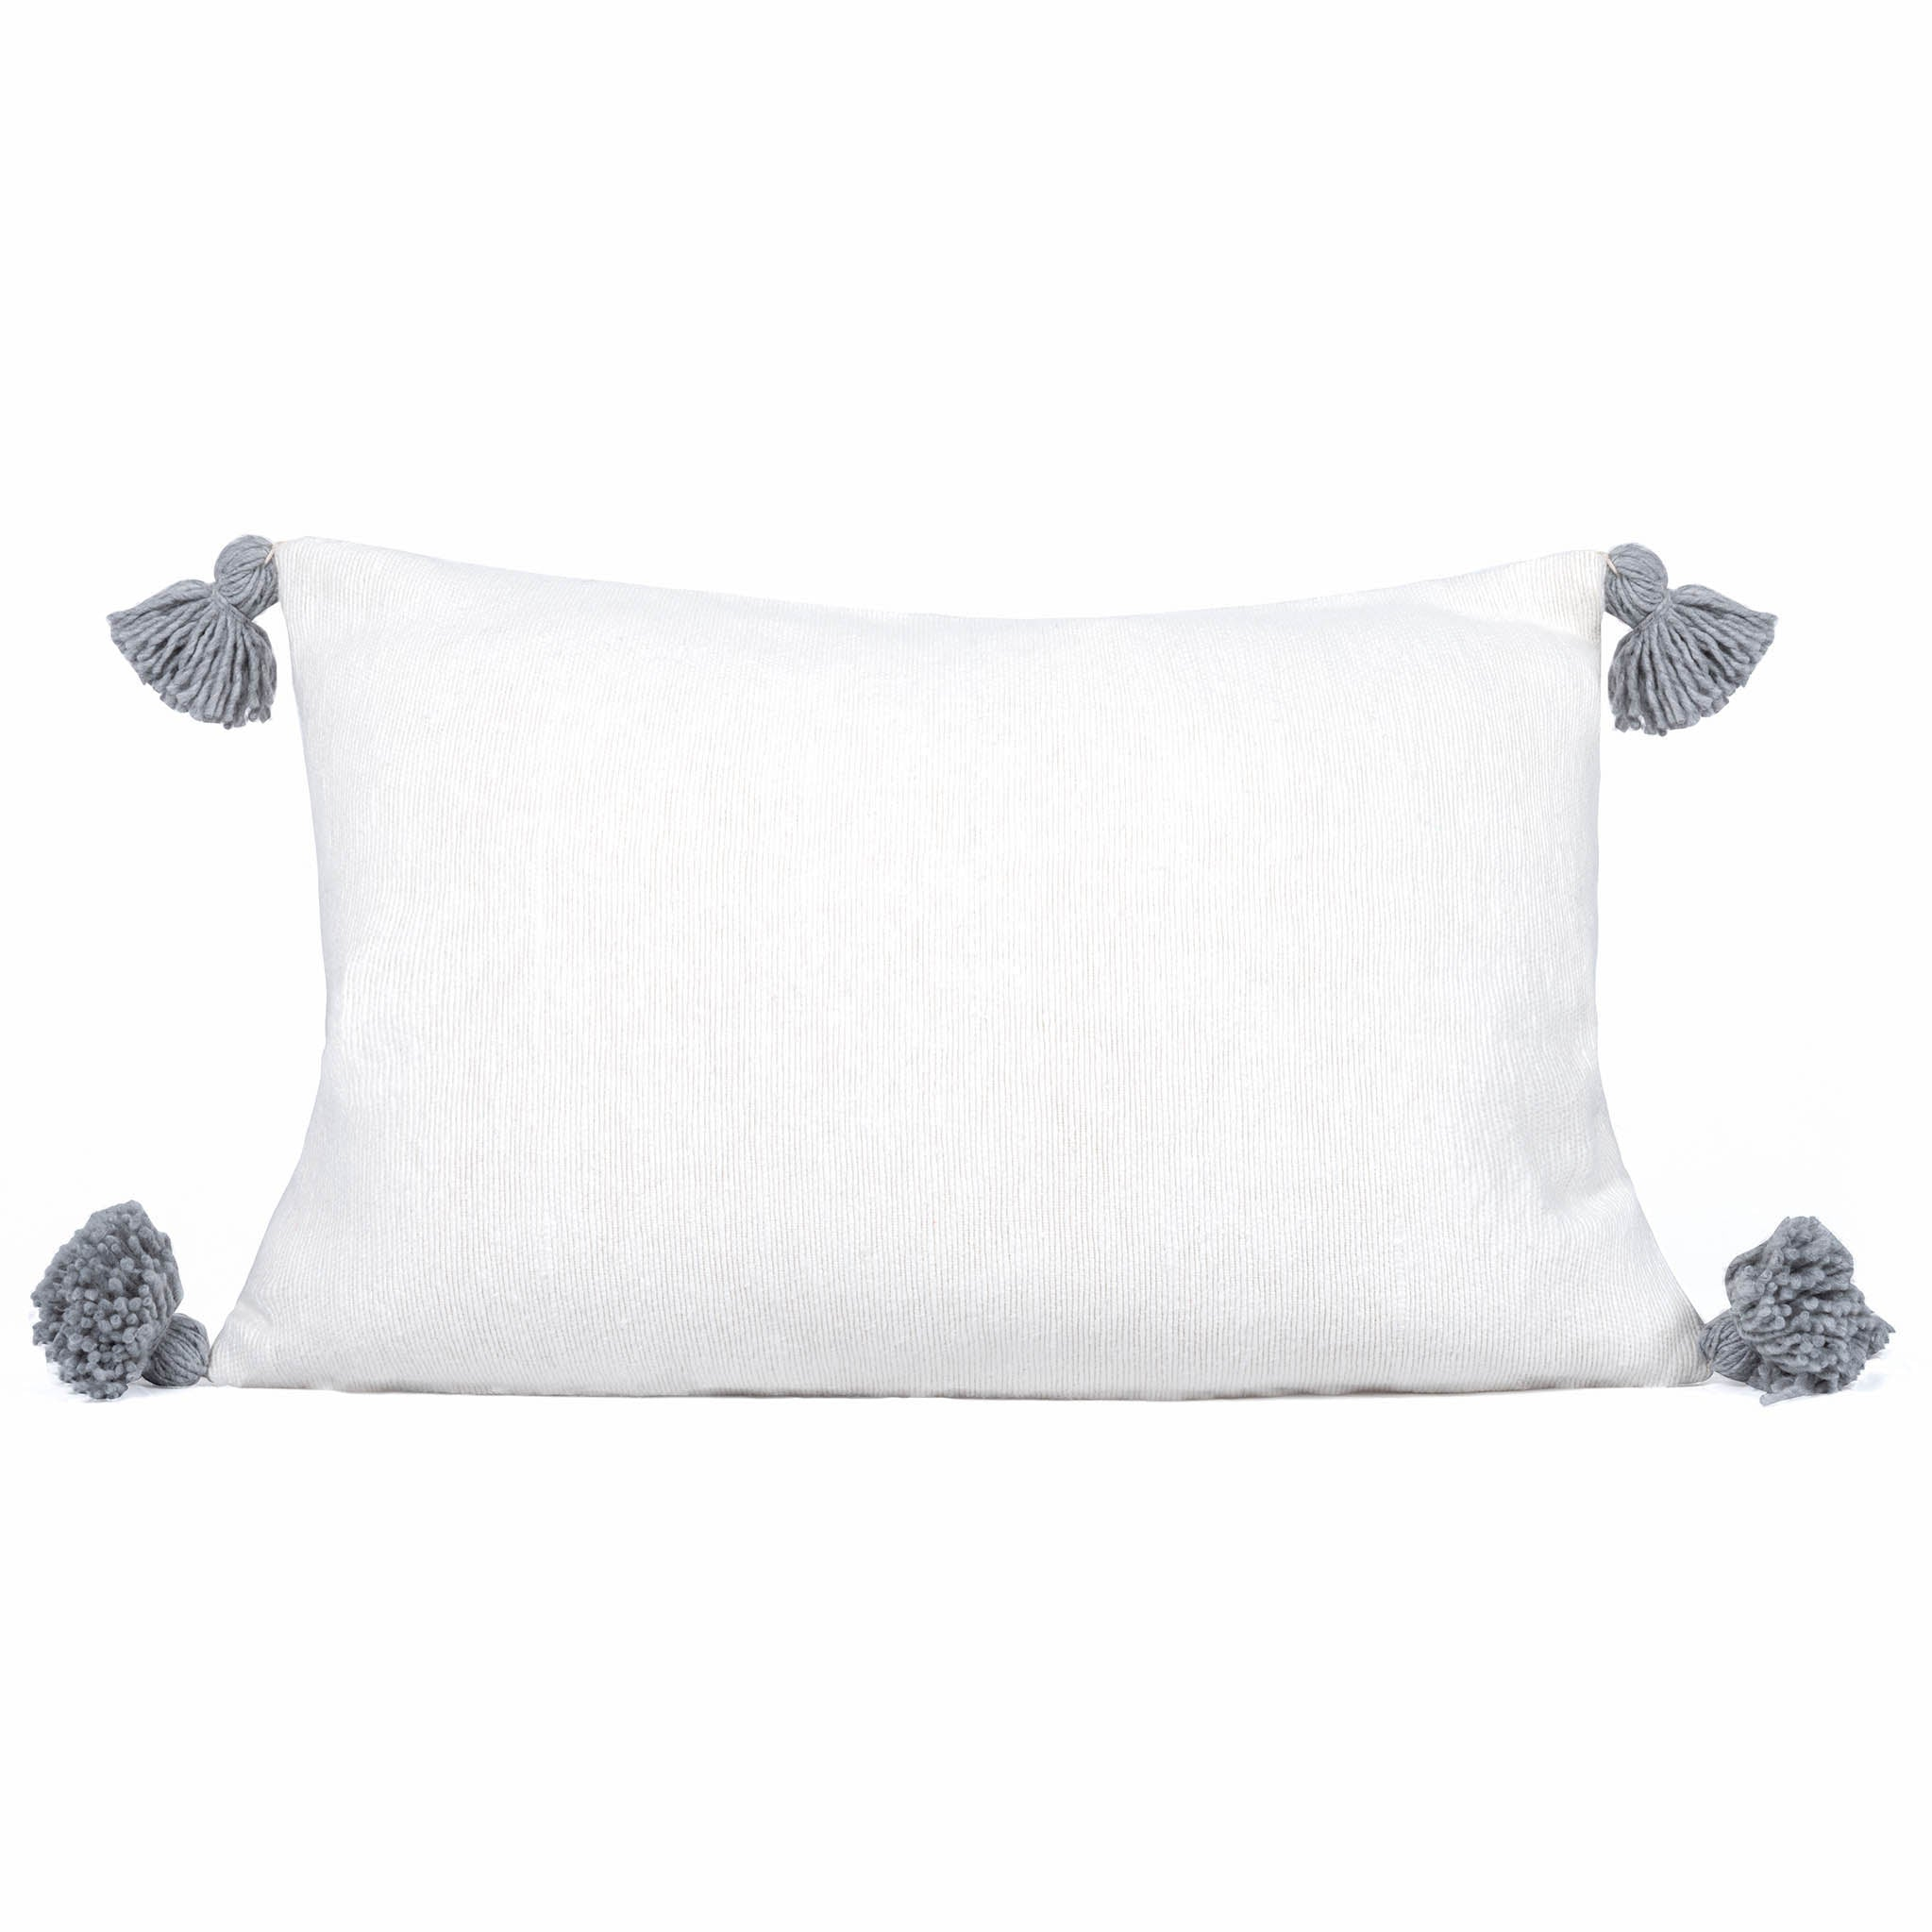 Solid white rectangled cushion with tassels